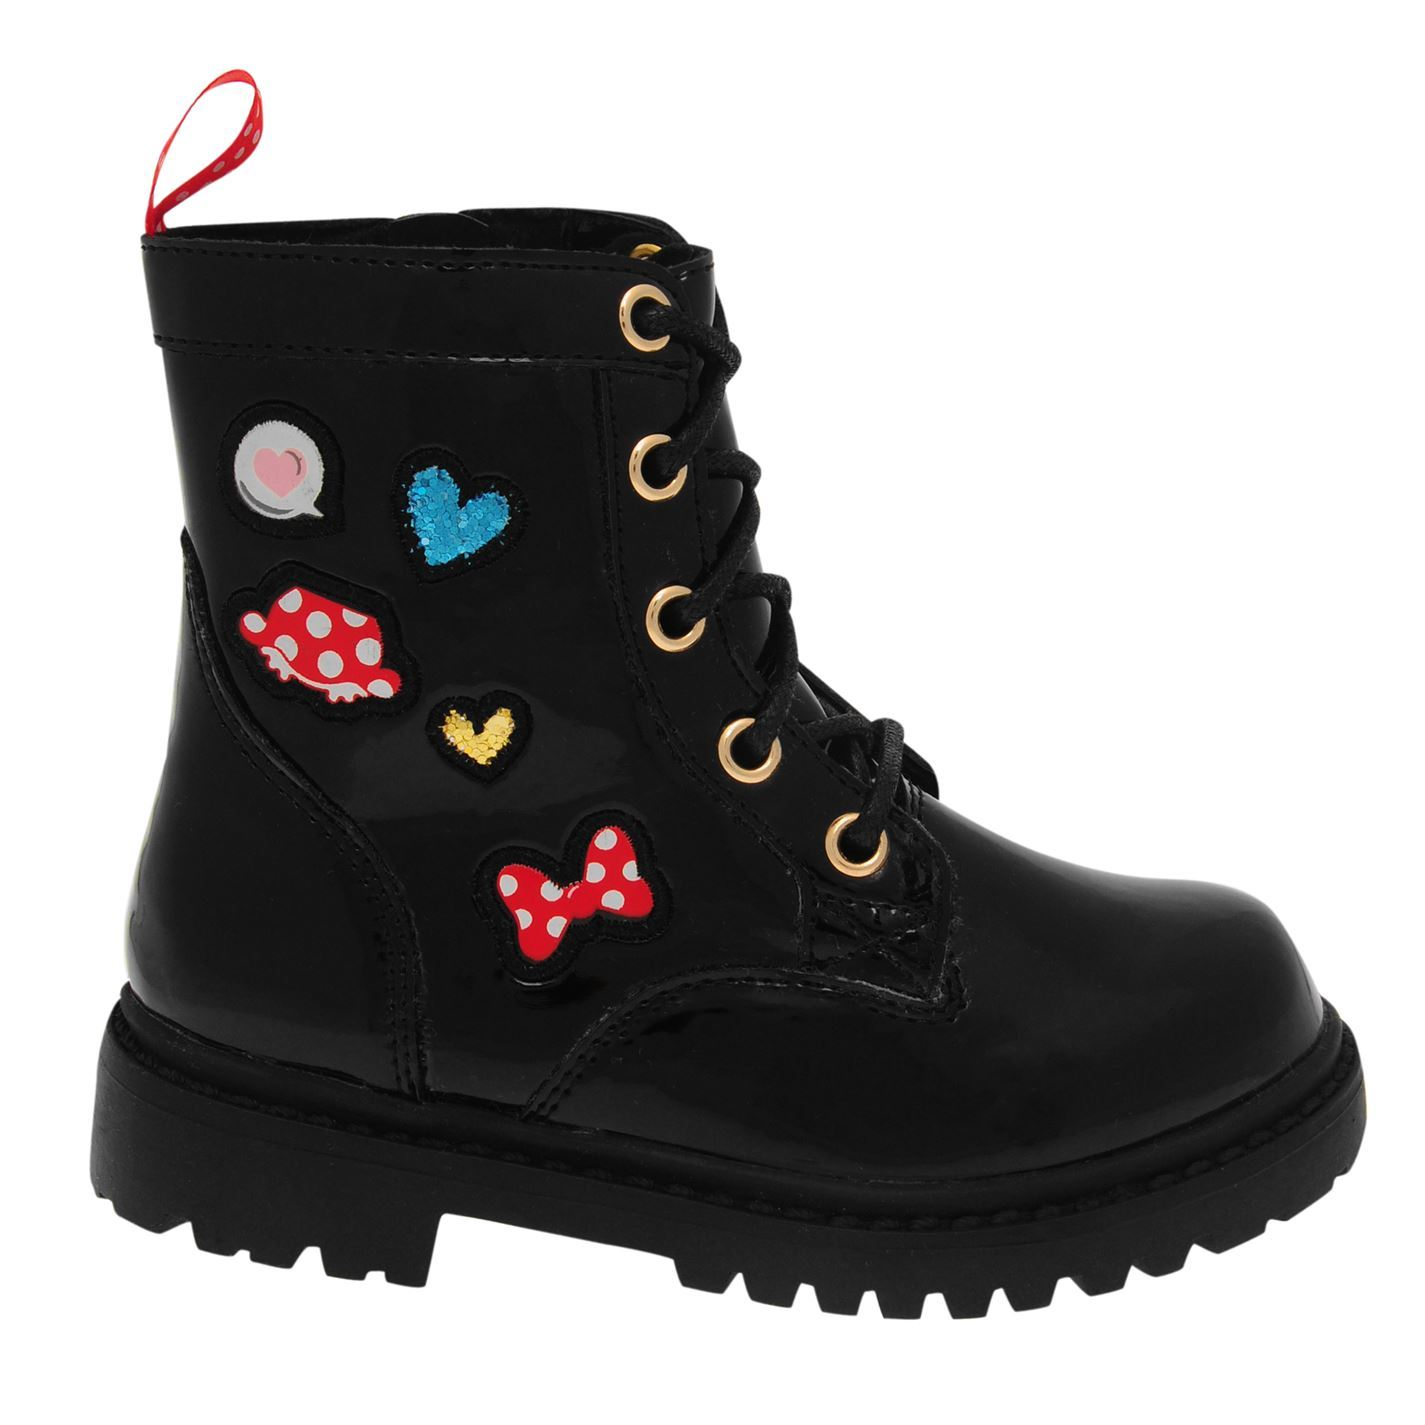 Details about Minnie Mouse Lace Boots Infants Girls Black Shoes Boot Kids  Footwear